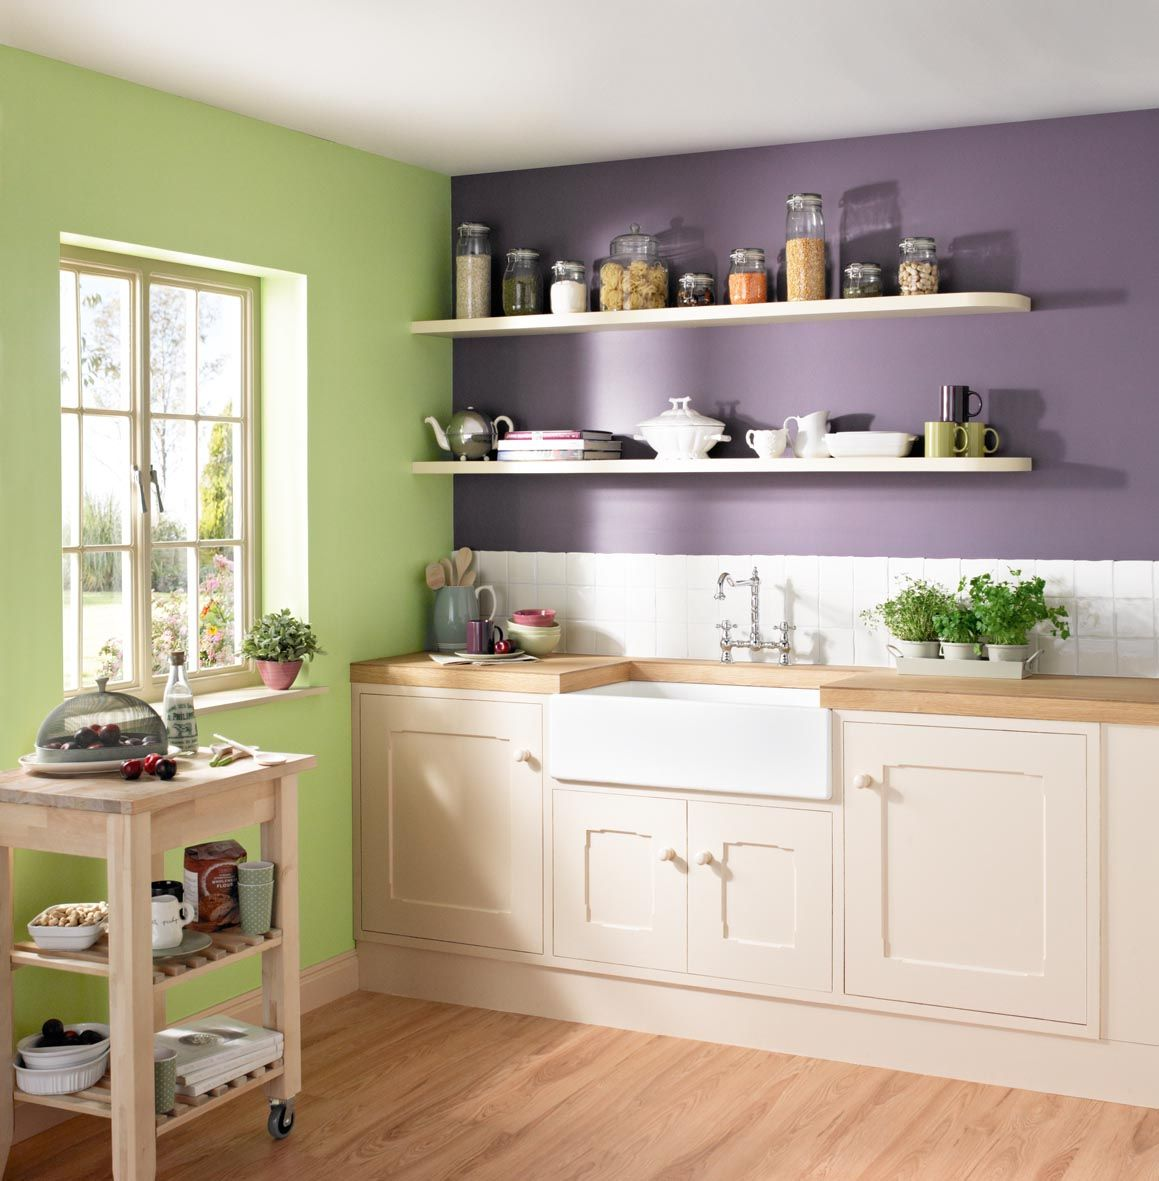 Crown Kitchen & Bathroom Paint In Olive Press (green) And